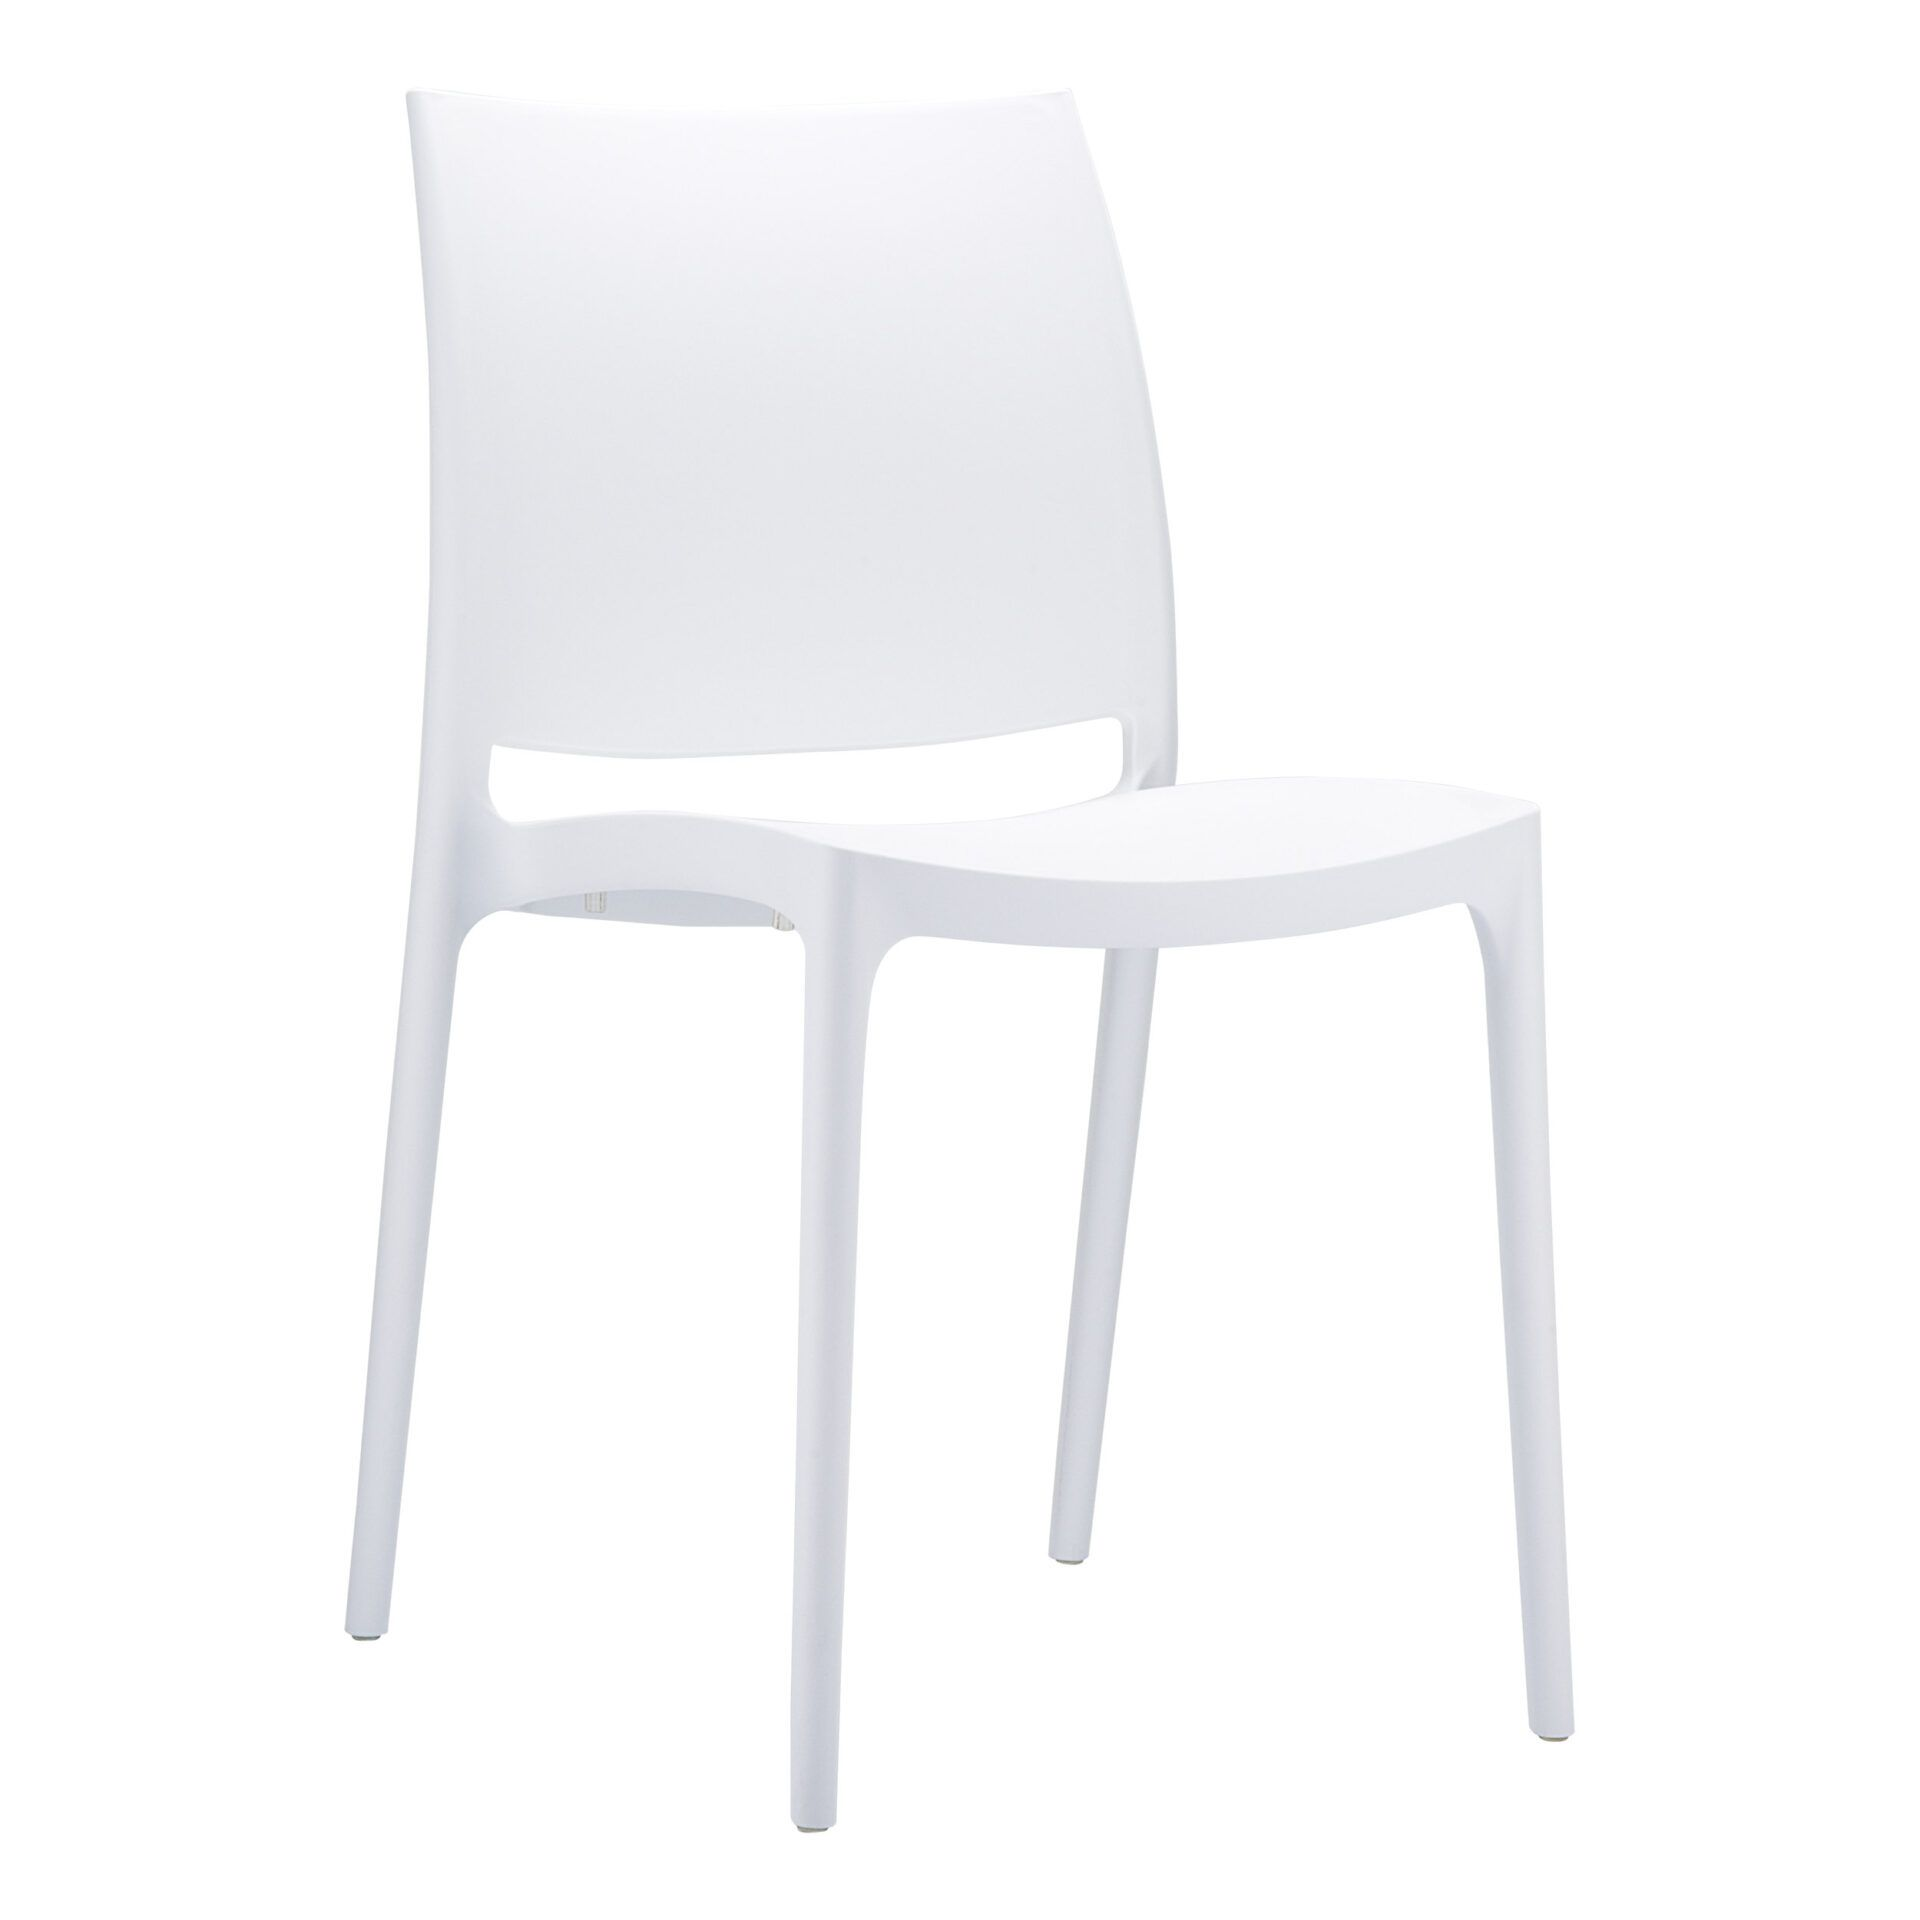 outdoor dining maya chair white front side